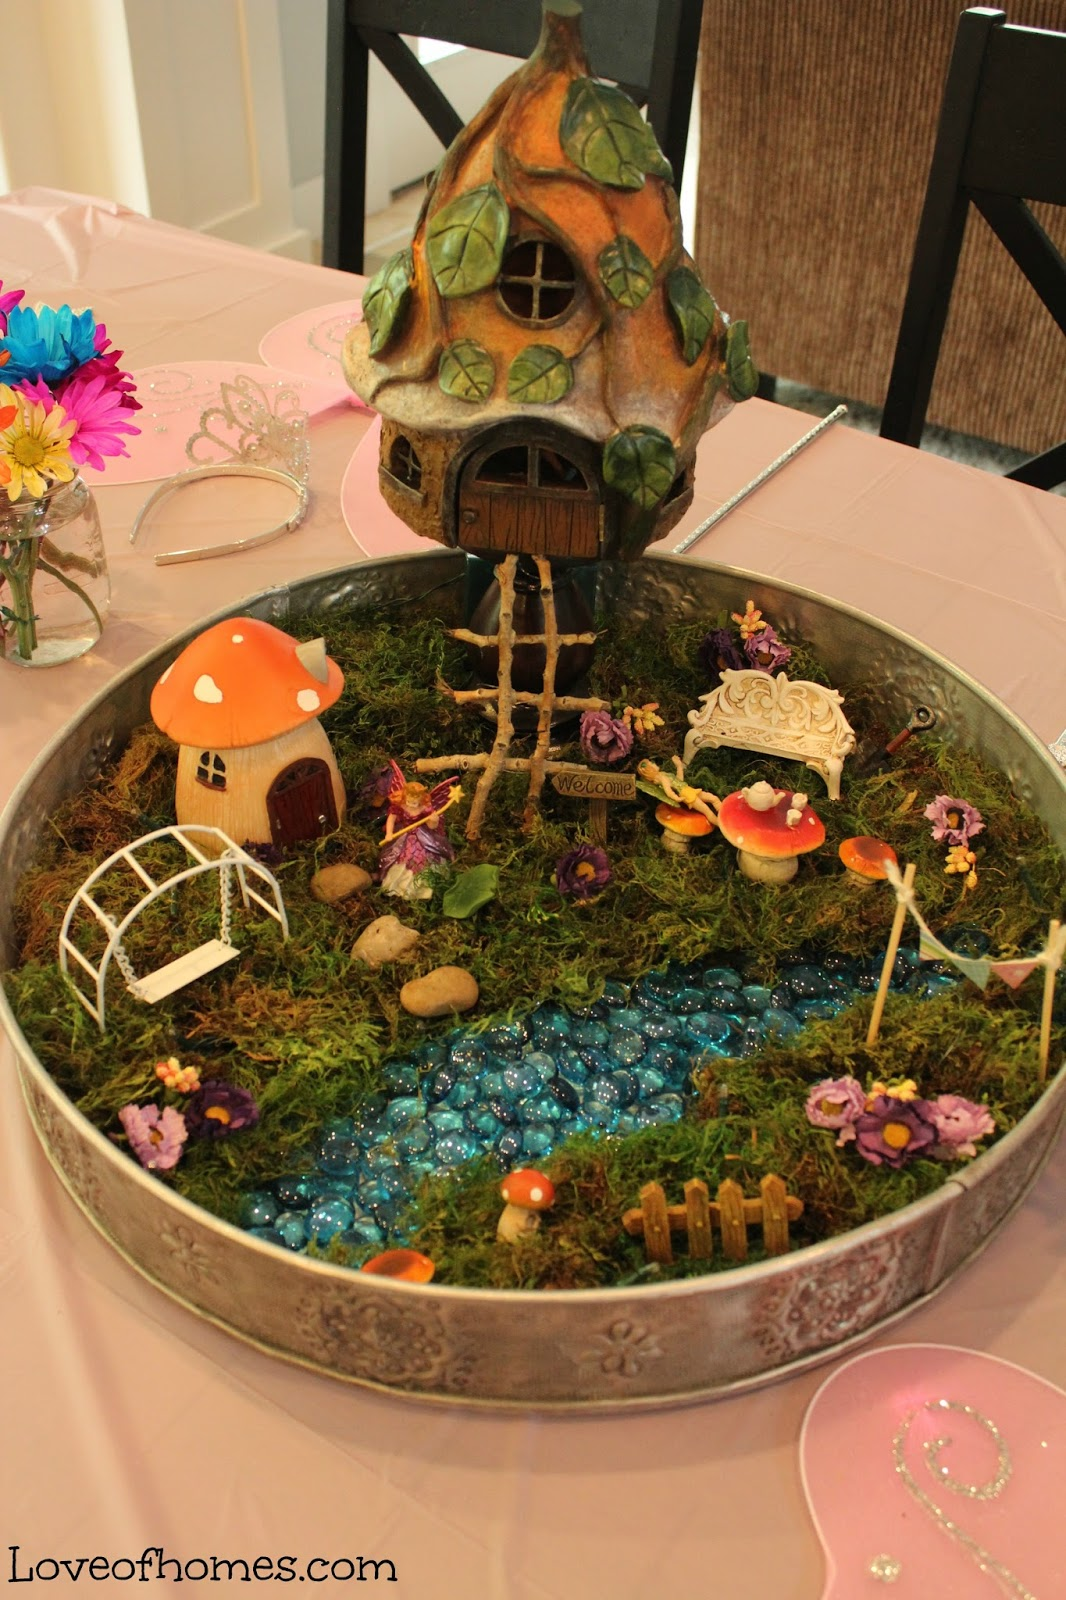 LOVE OF HOMES: Fairy Garden Party